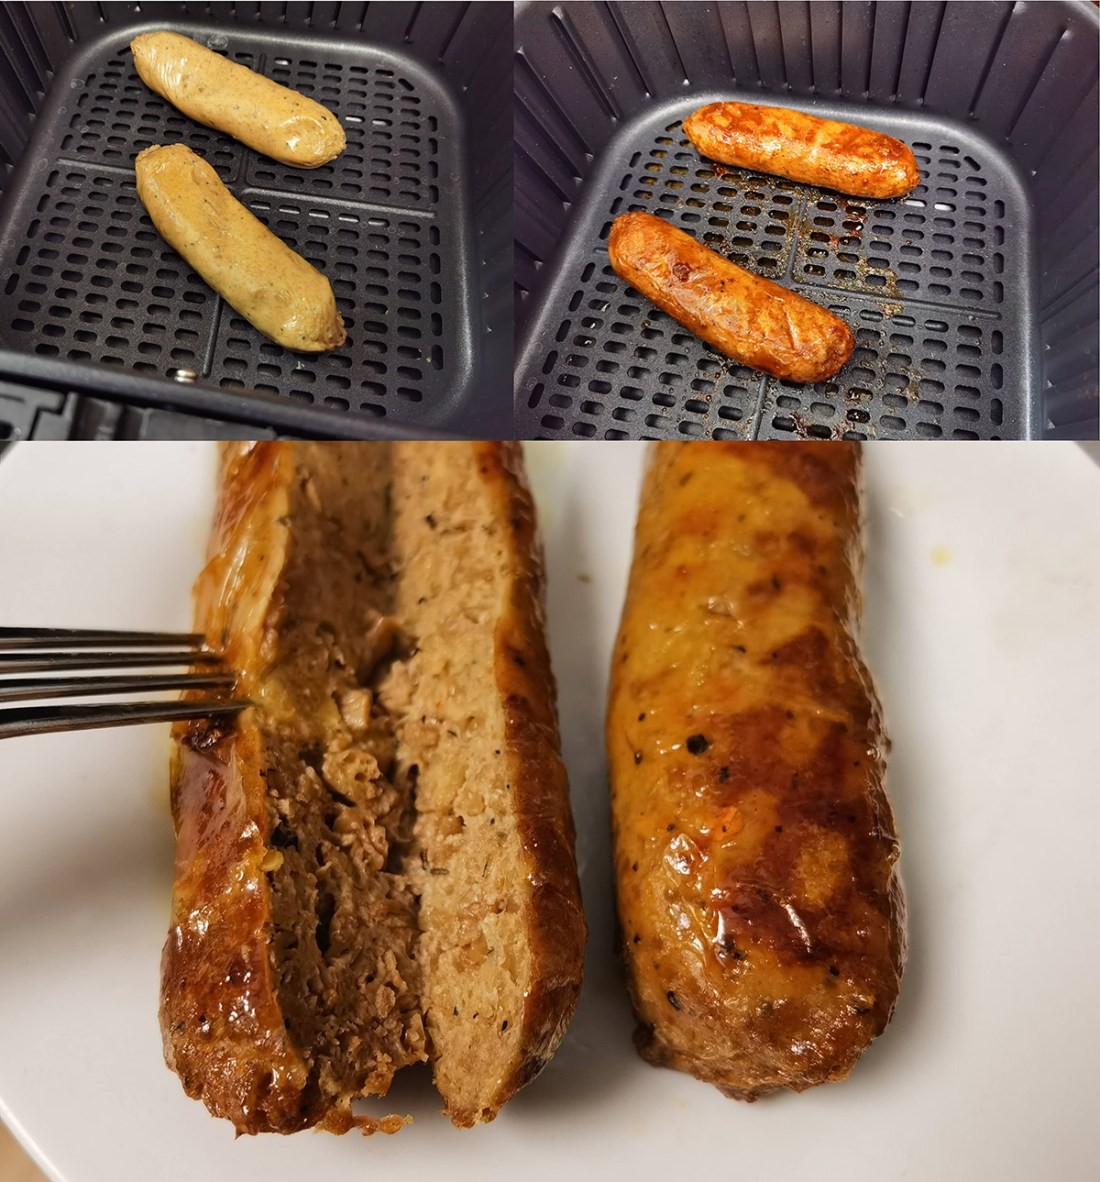 Review: COSORI 5.8QT Air Fryer From Amazon Beyond Meat Sausages